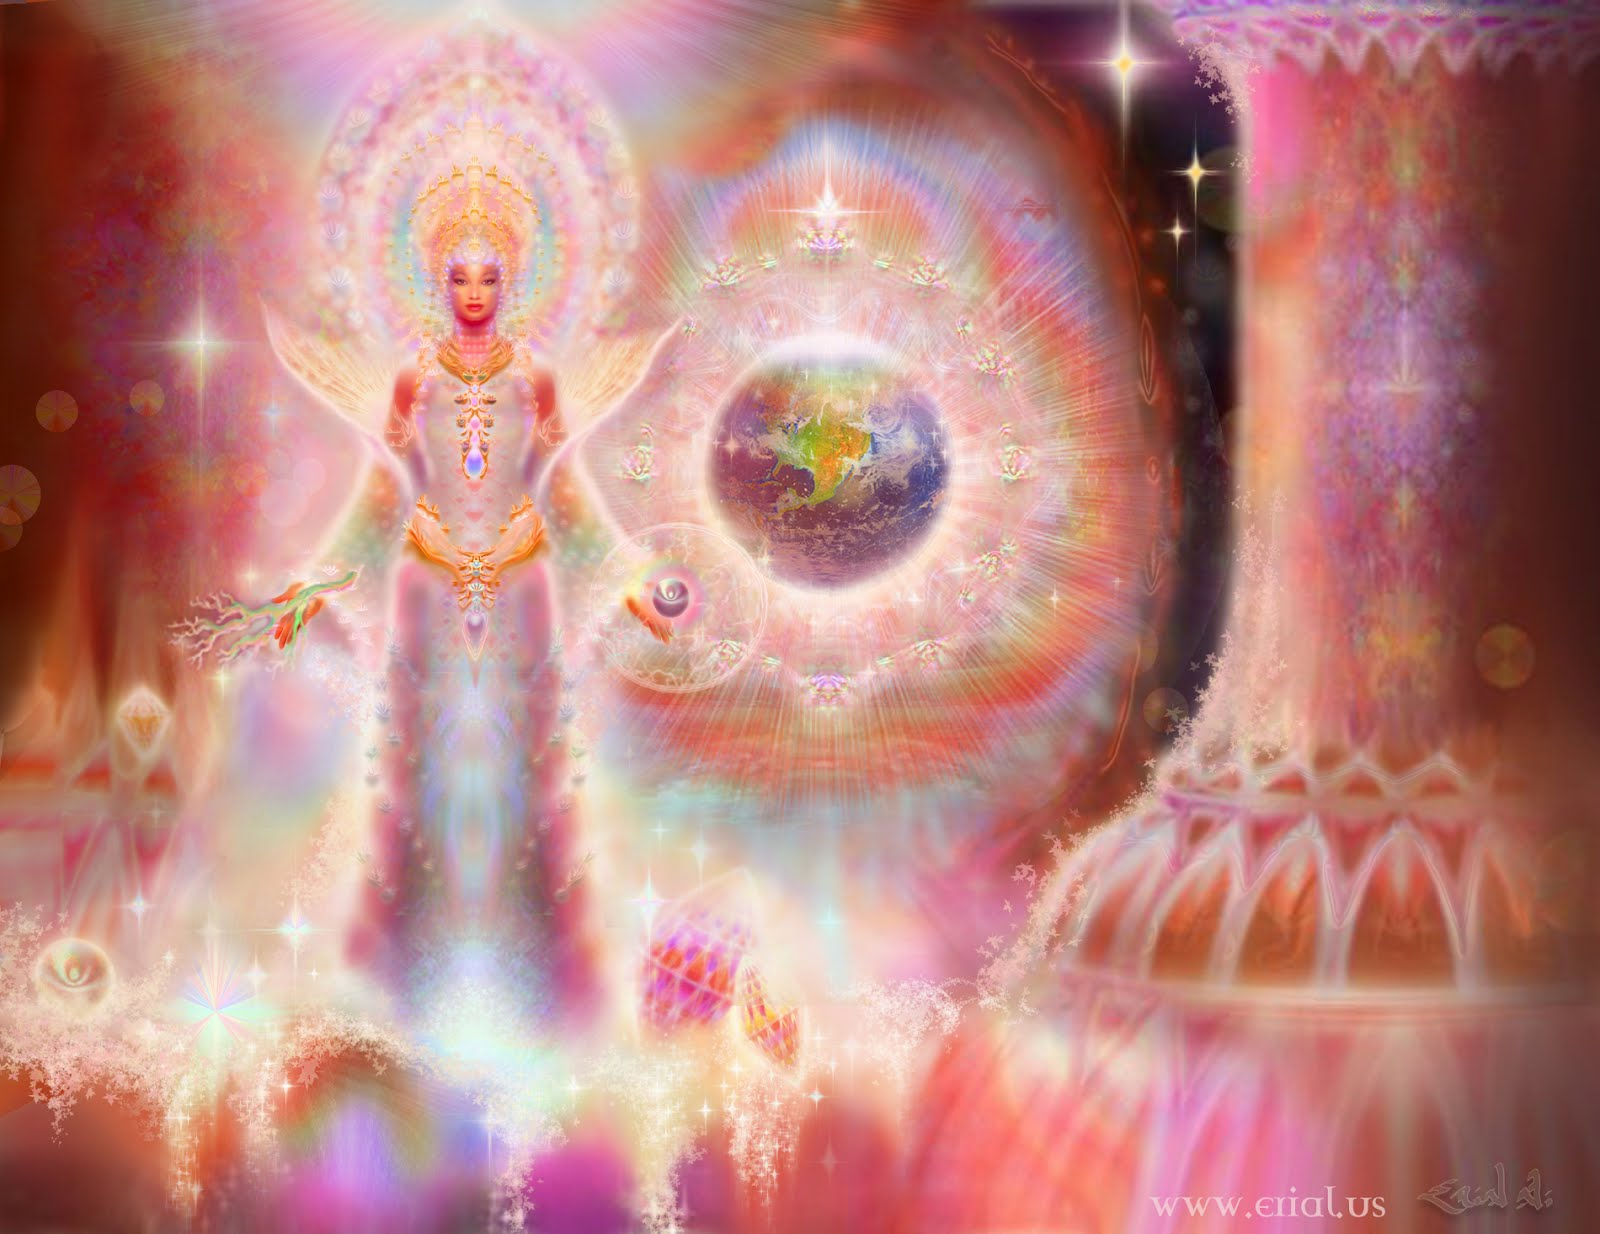 The Great Beings are Here: Ascension Report 12.19.12